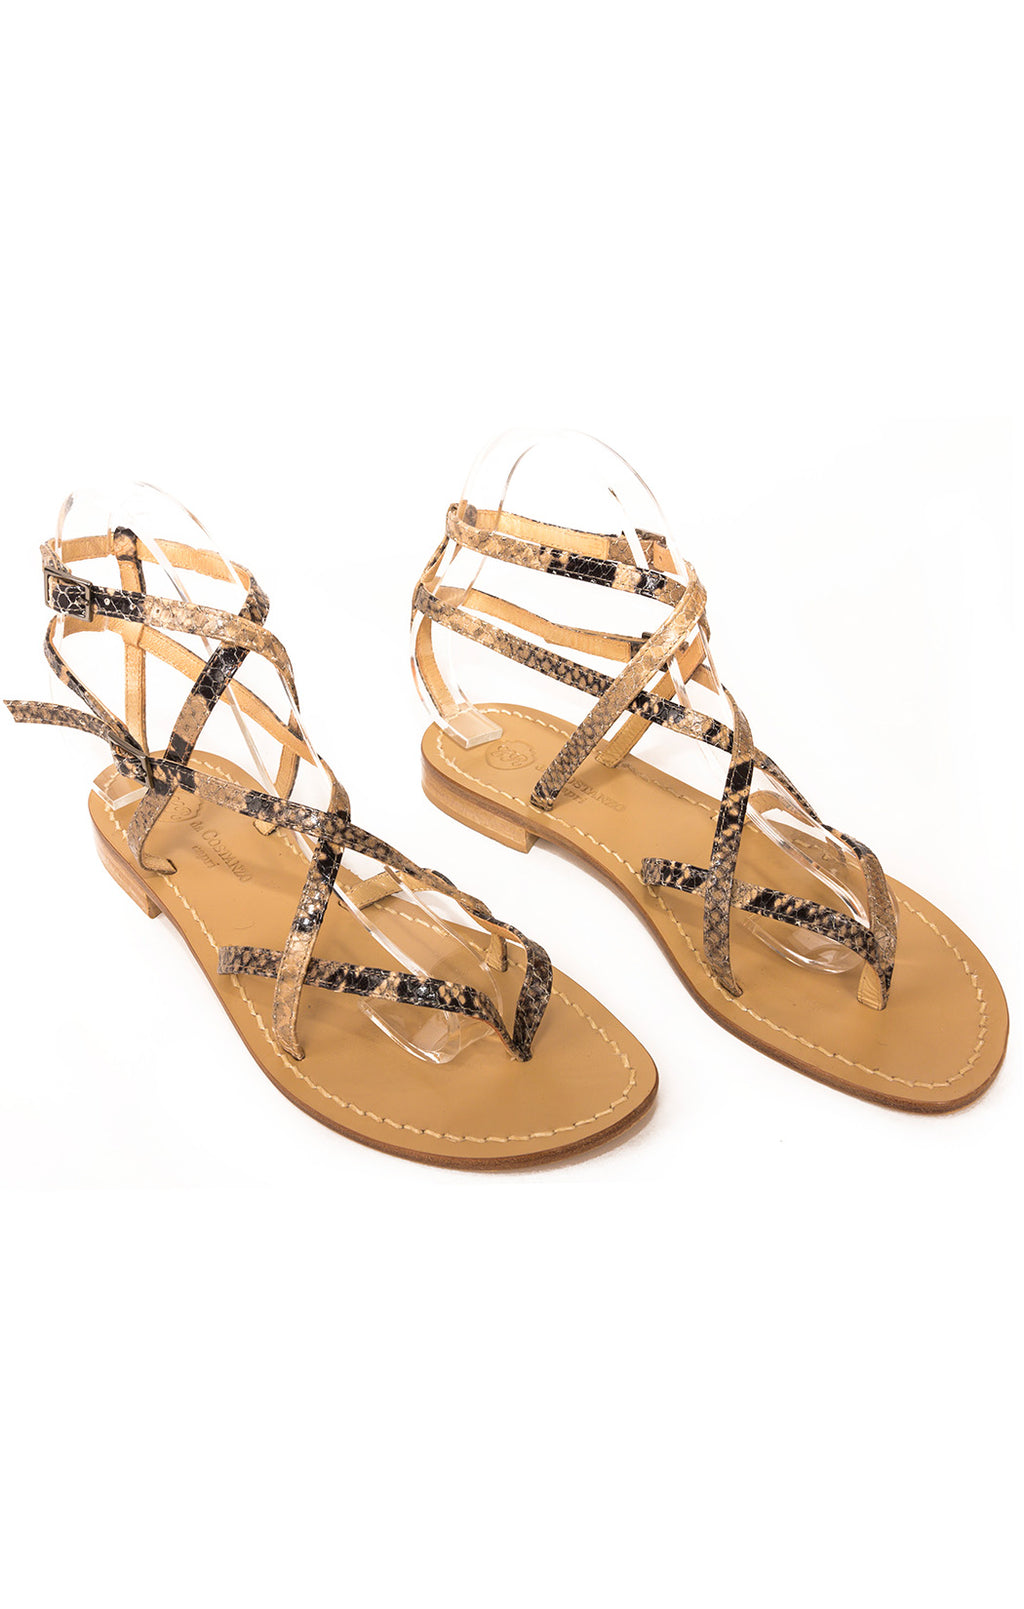 Front view of DA COSTANZO Capri Sandals Size: 39/9